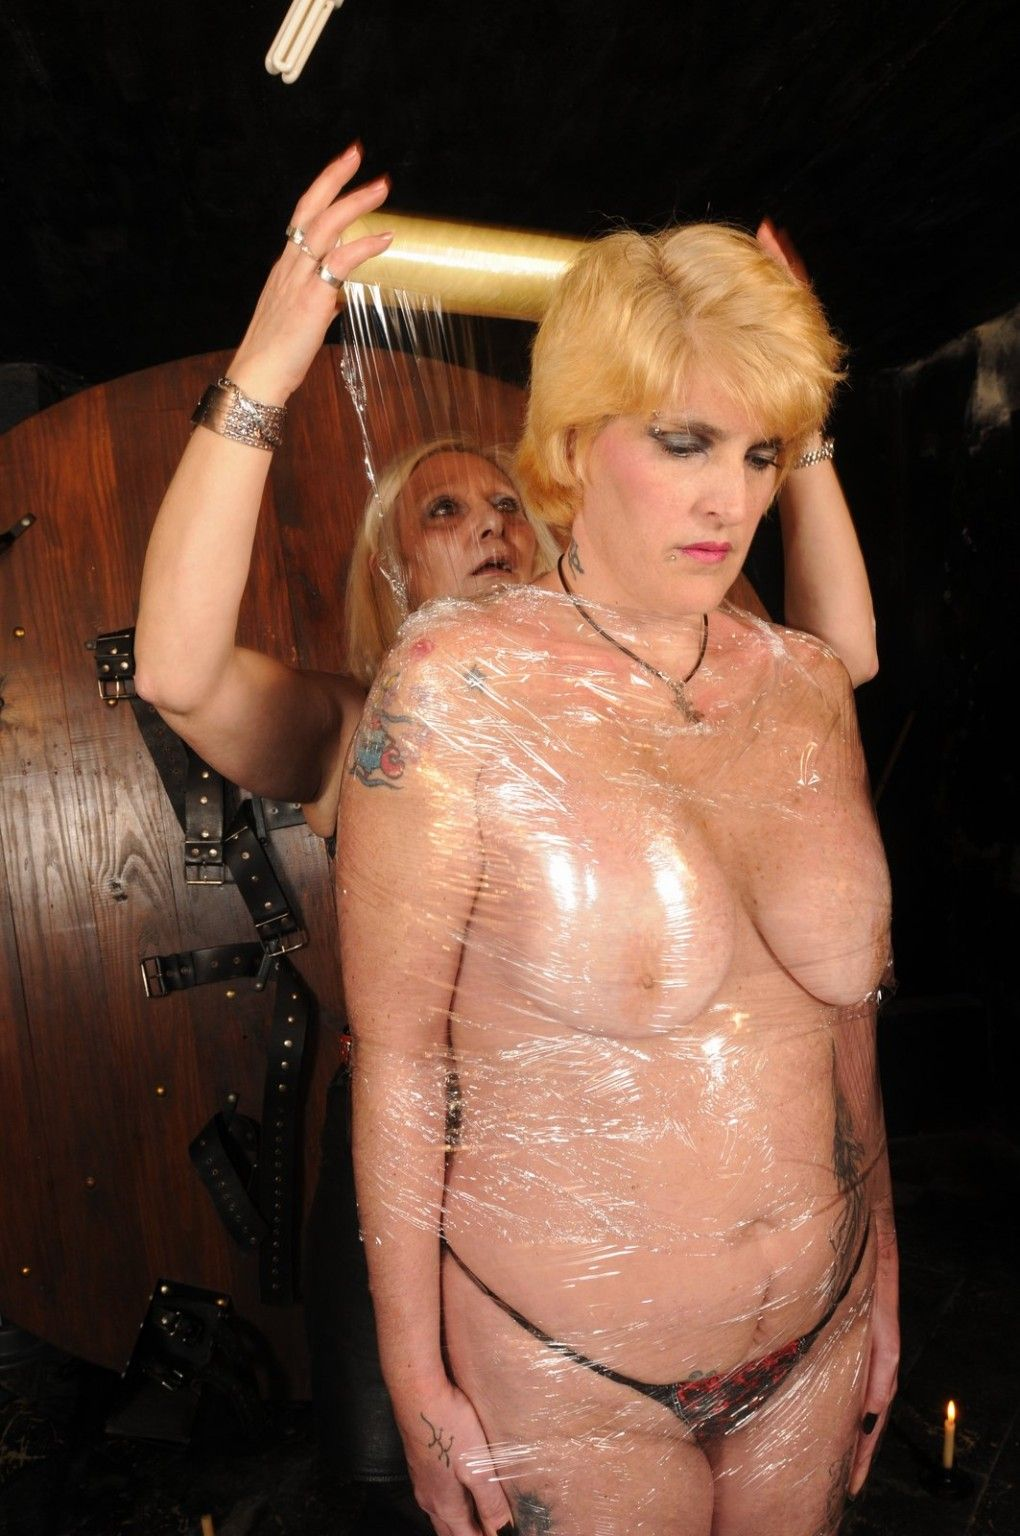 best of Bdsm Cling film